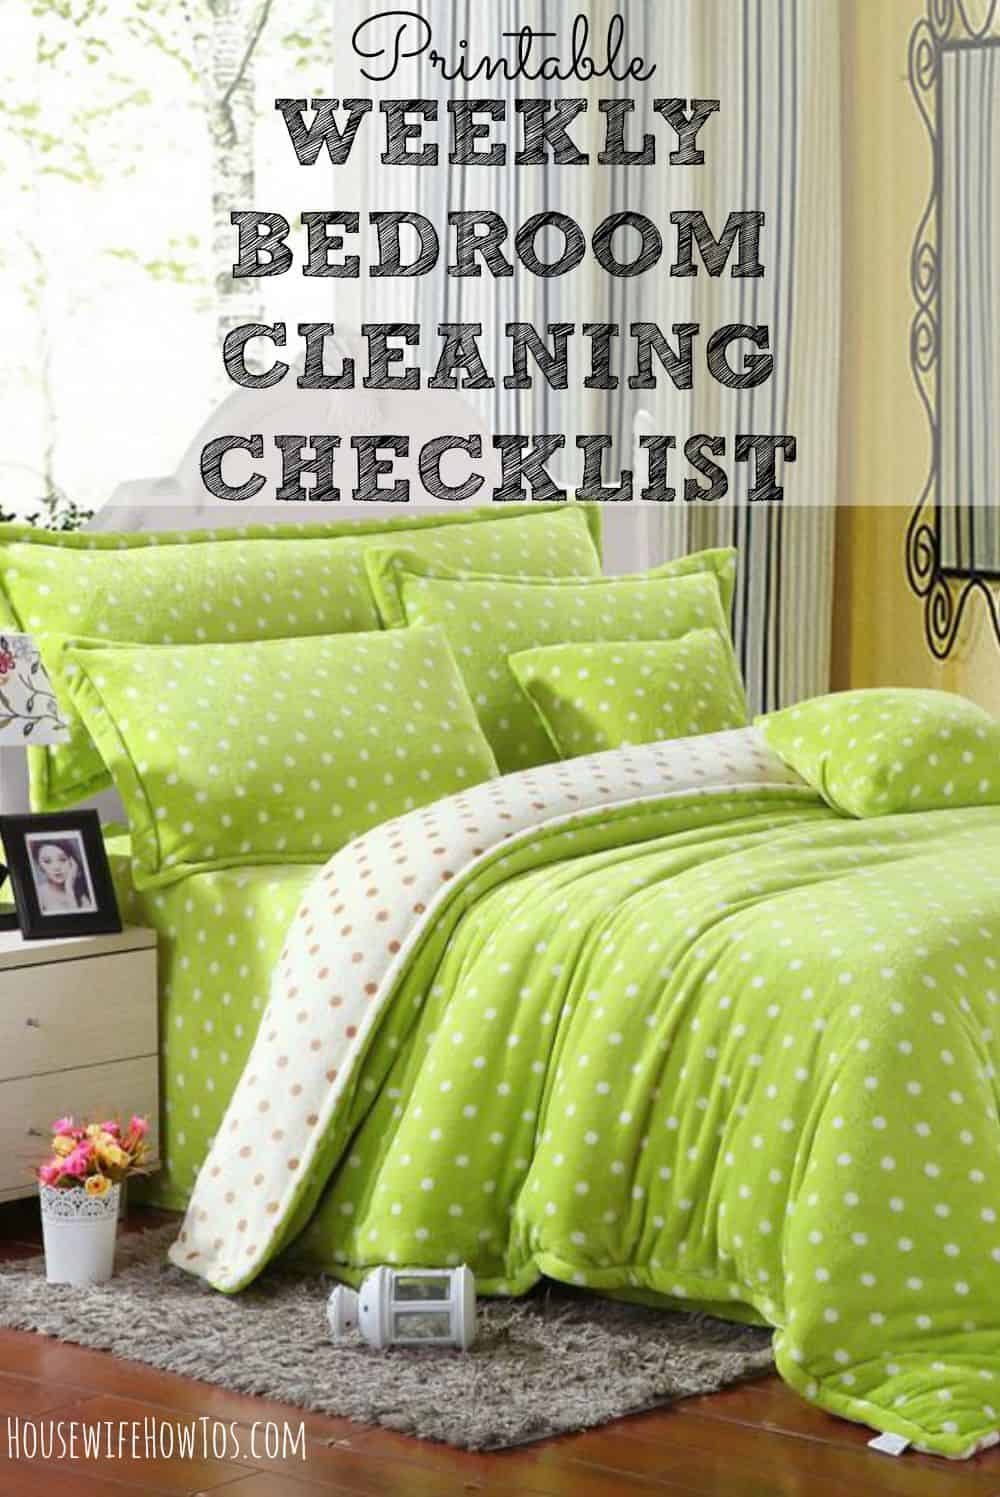 Pin Printable weekly bedroom cleaning checklist from HousewifeHowTos